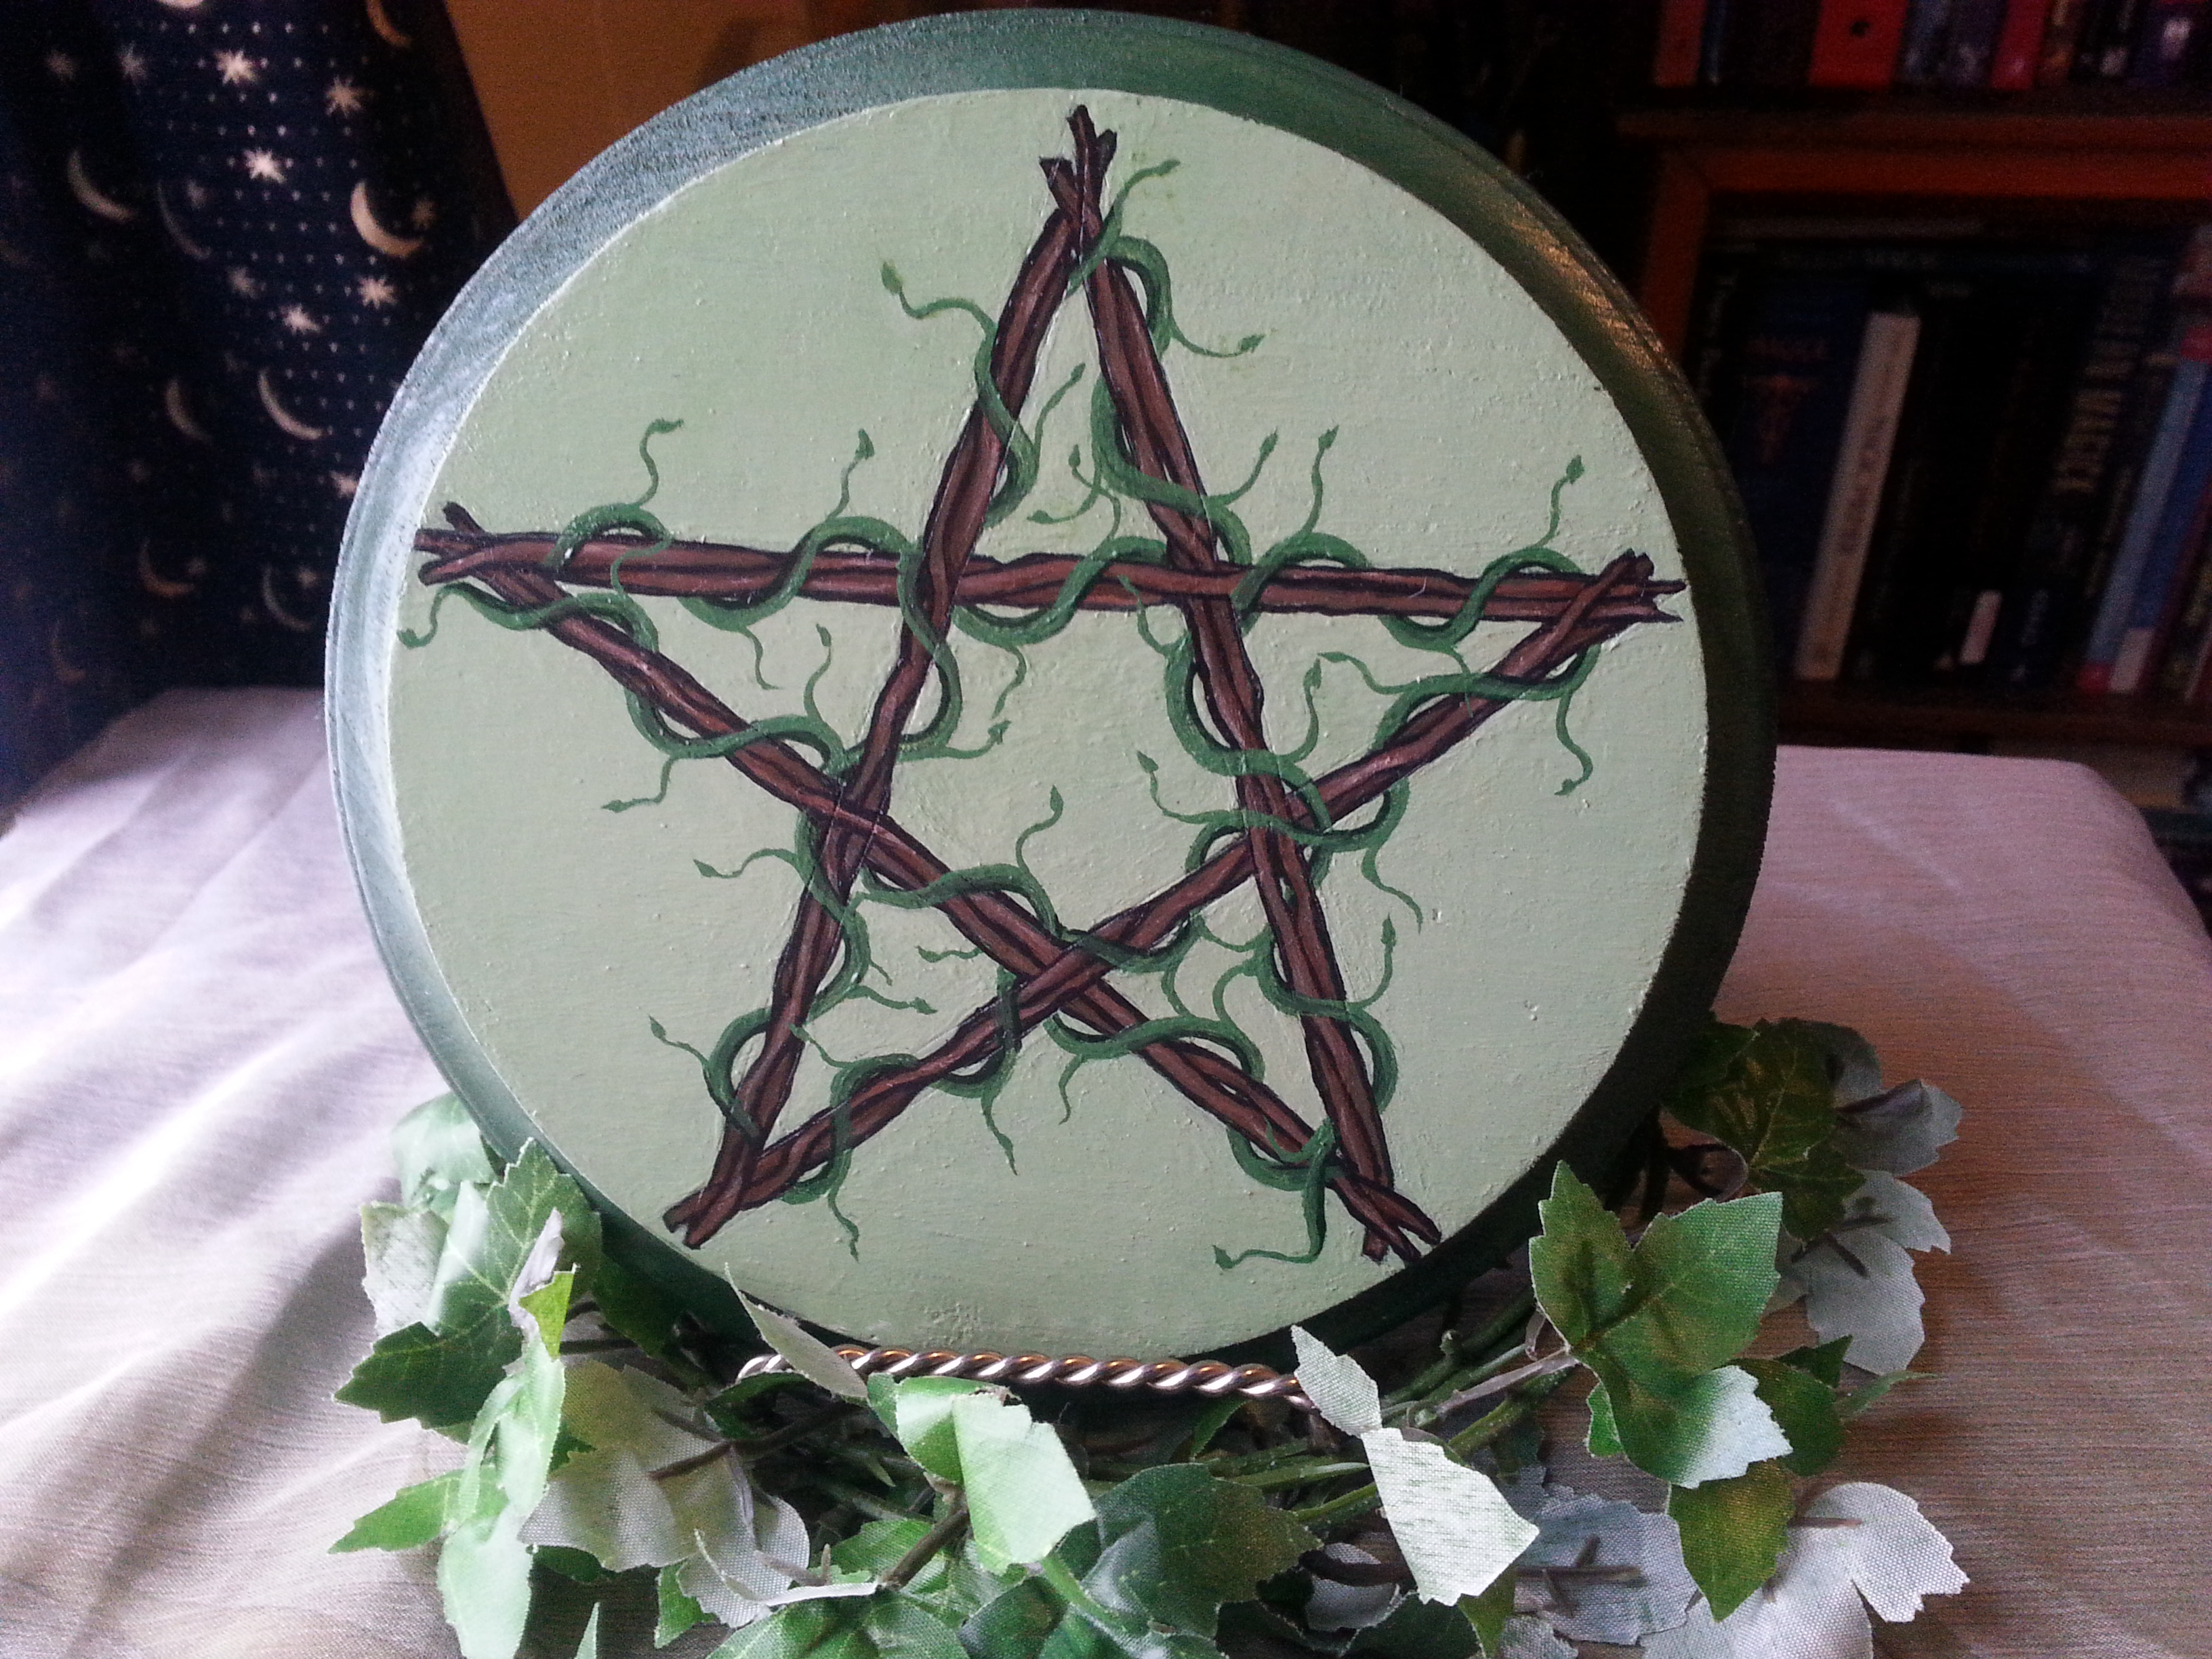 Greenwitch Pentacle By Sable Aradia Copyright C 2016 All Rights